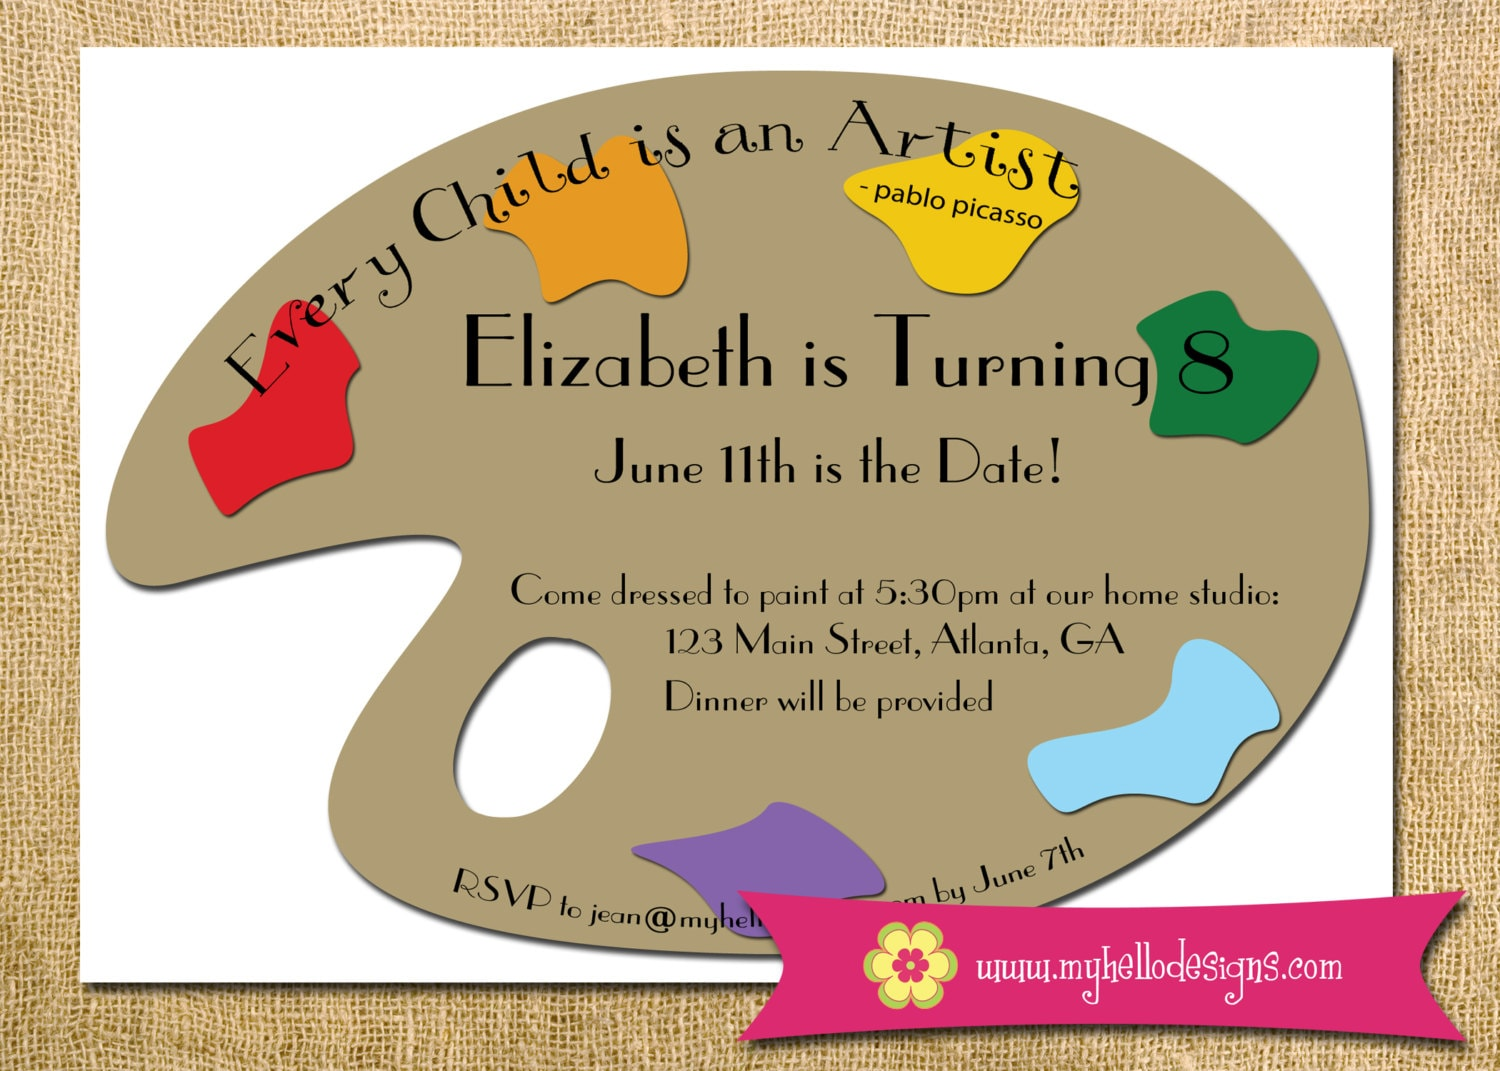 Painting Birthday Party Invitations Gallery - Party Invitations Ideas